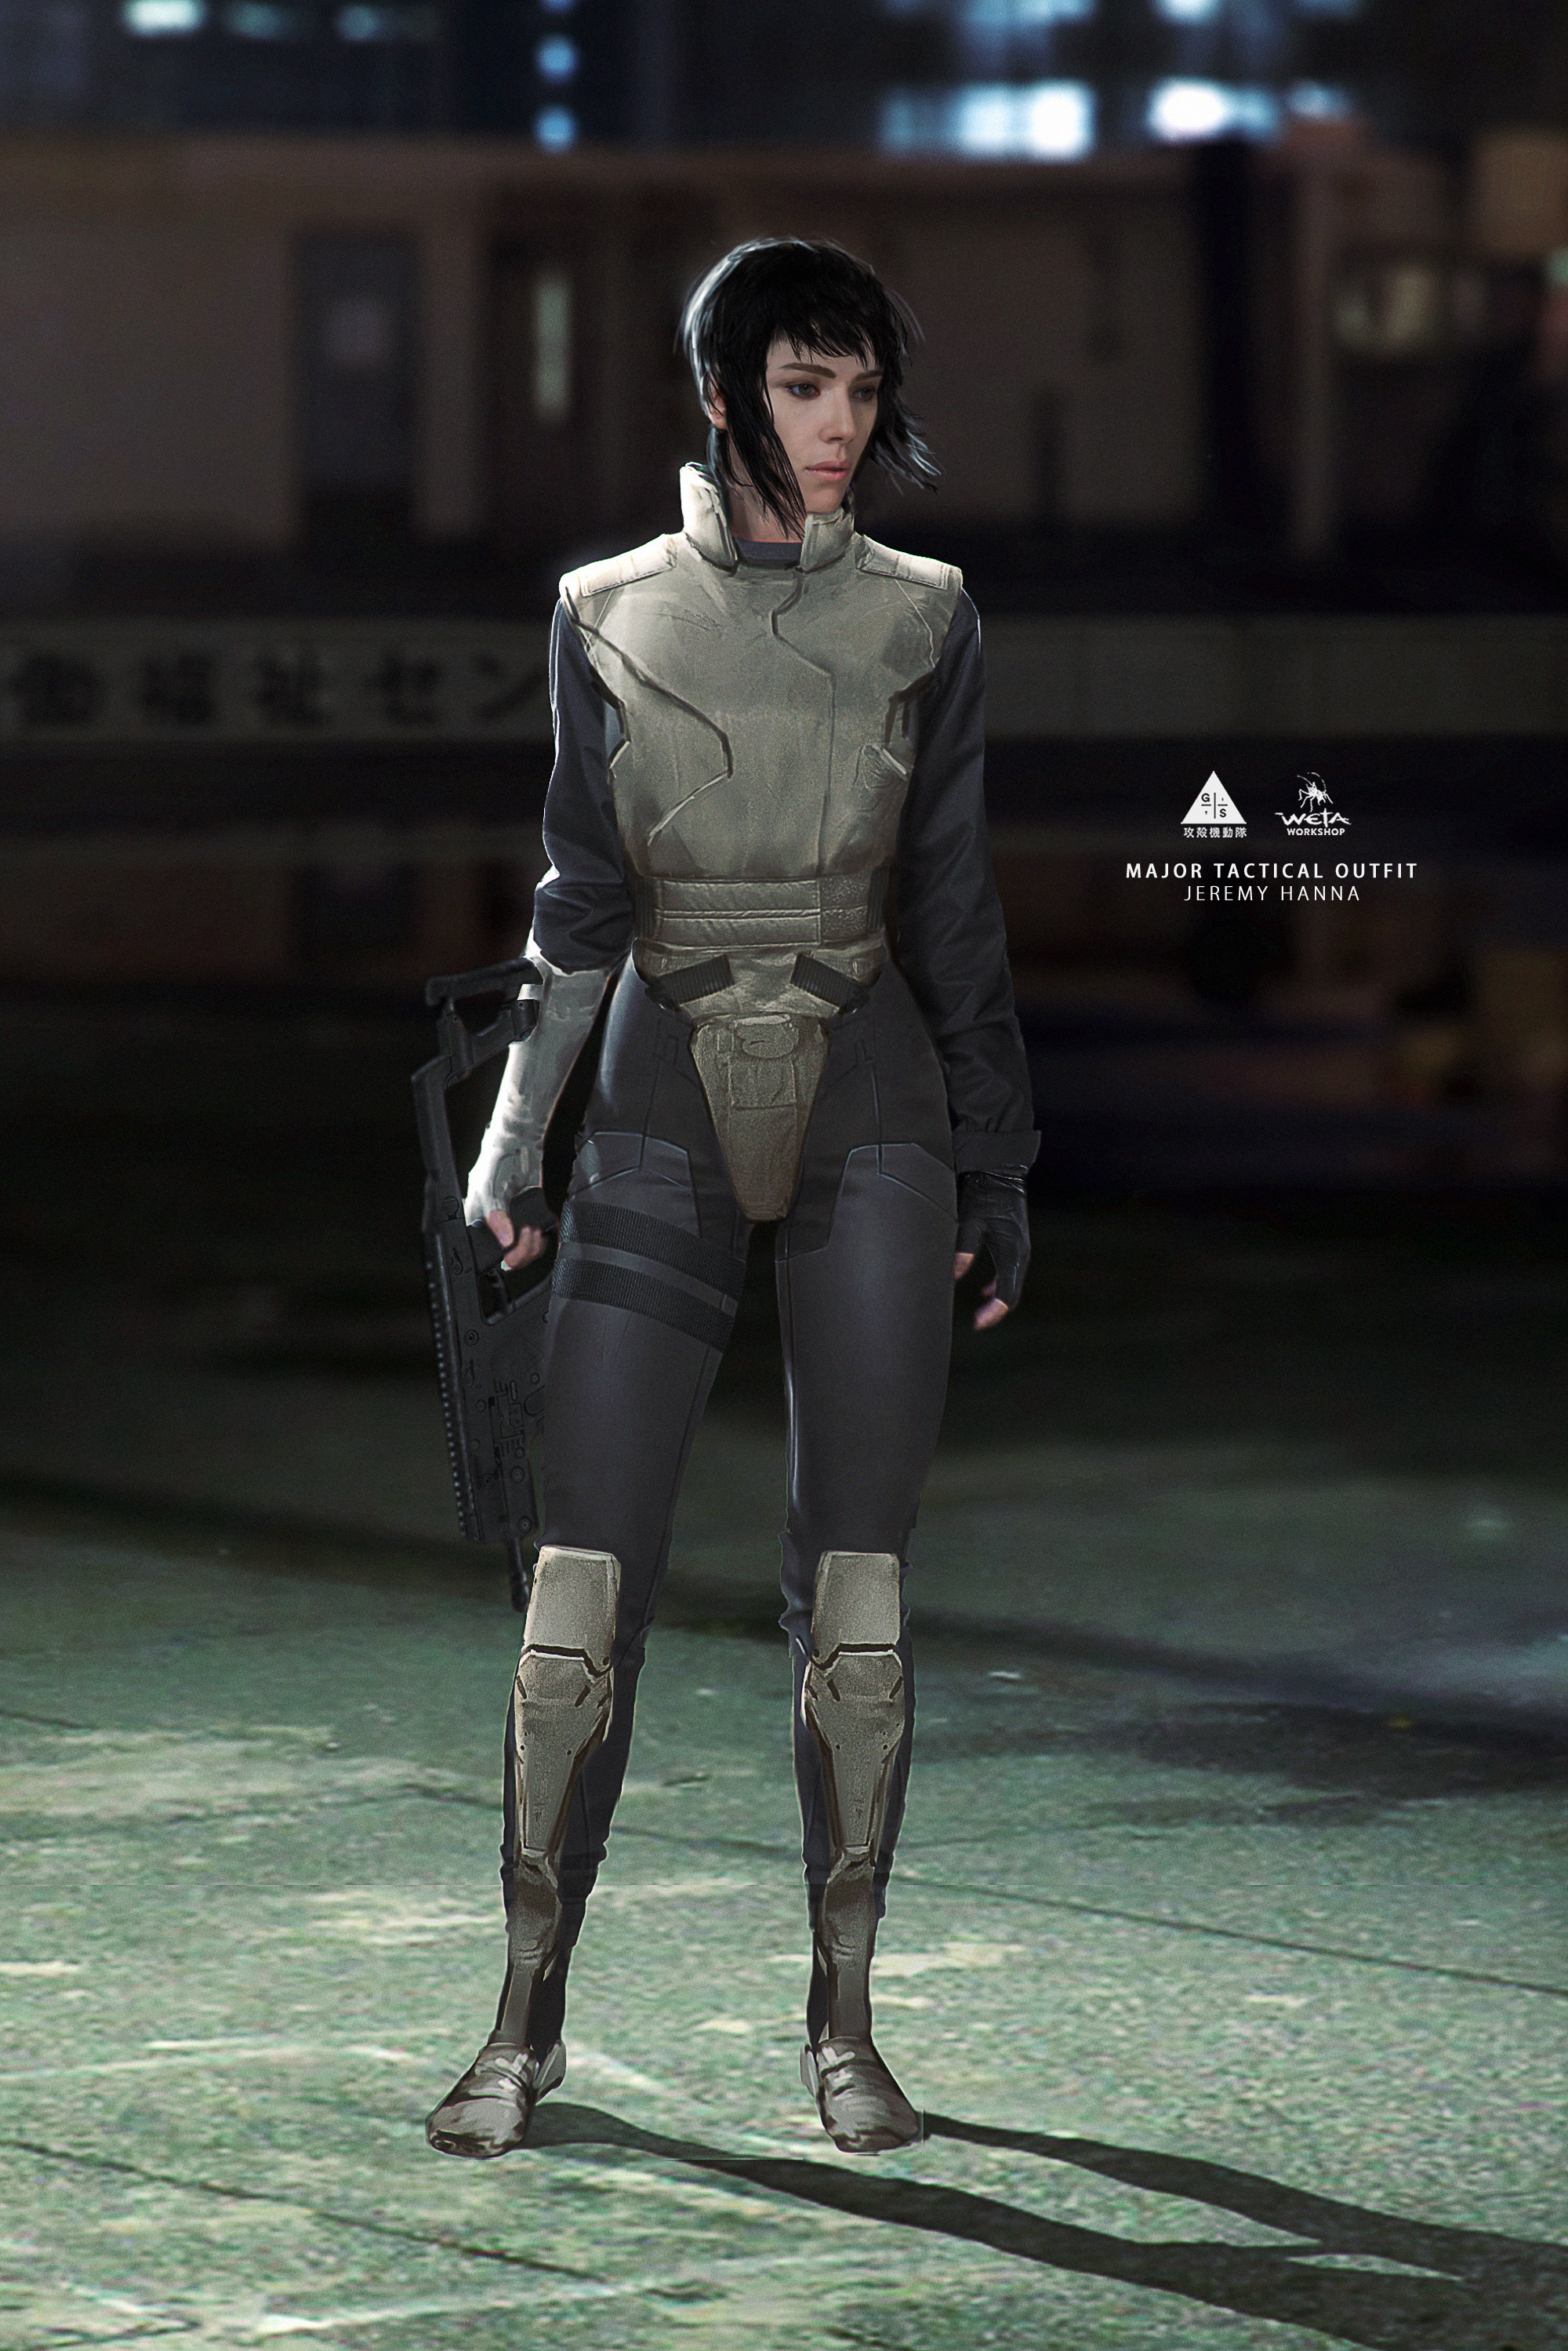 Major Tactical Outfit - Artist: Jeremy Hanna